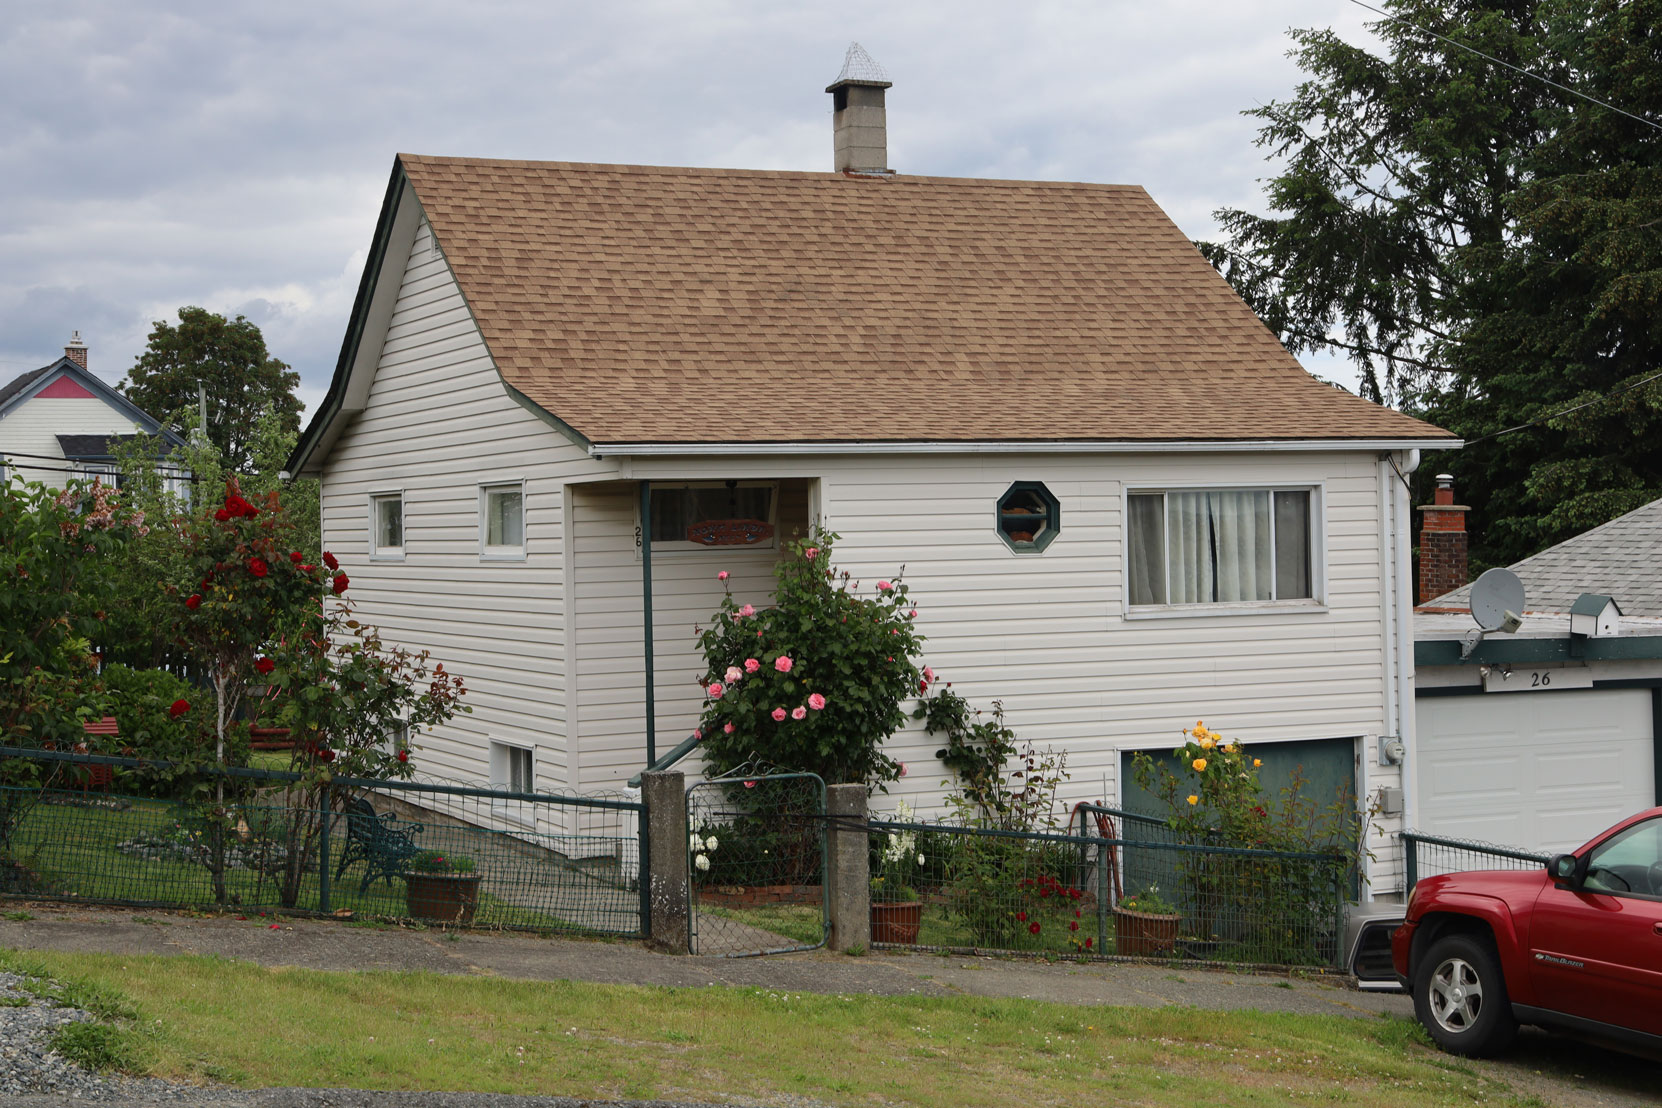 26 Methuen Street. Ladysmith, BC, built in 1930.